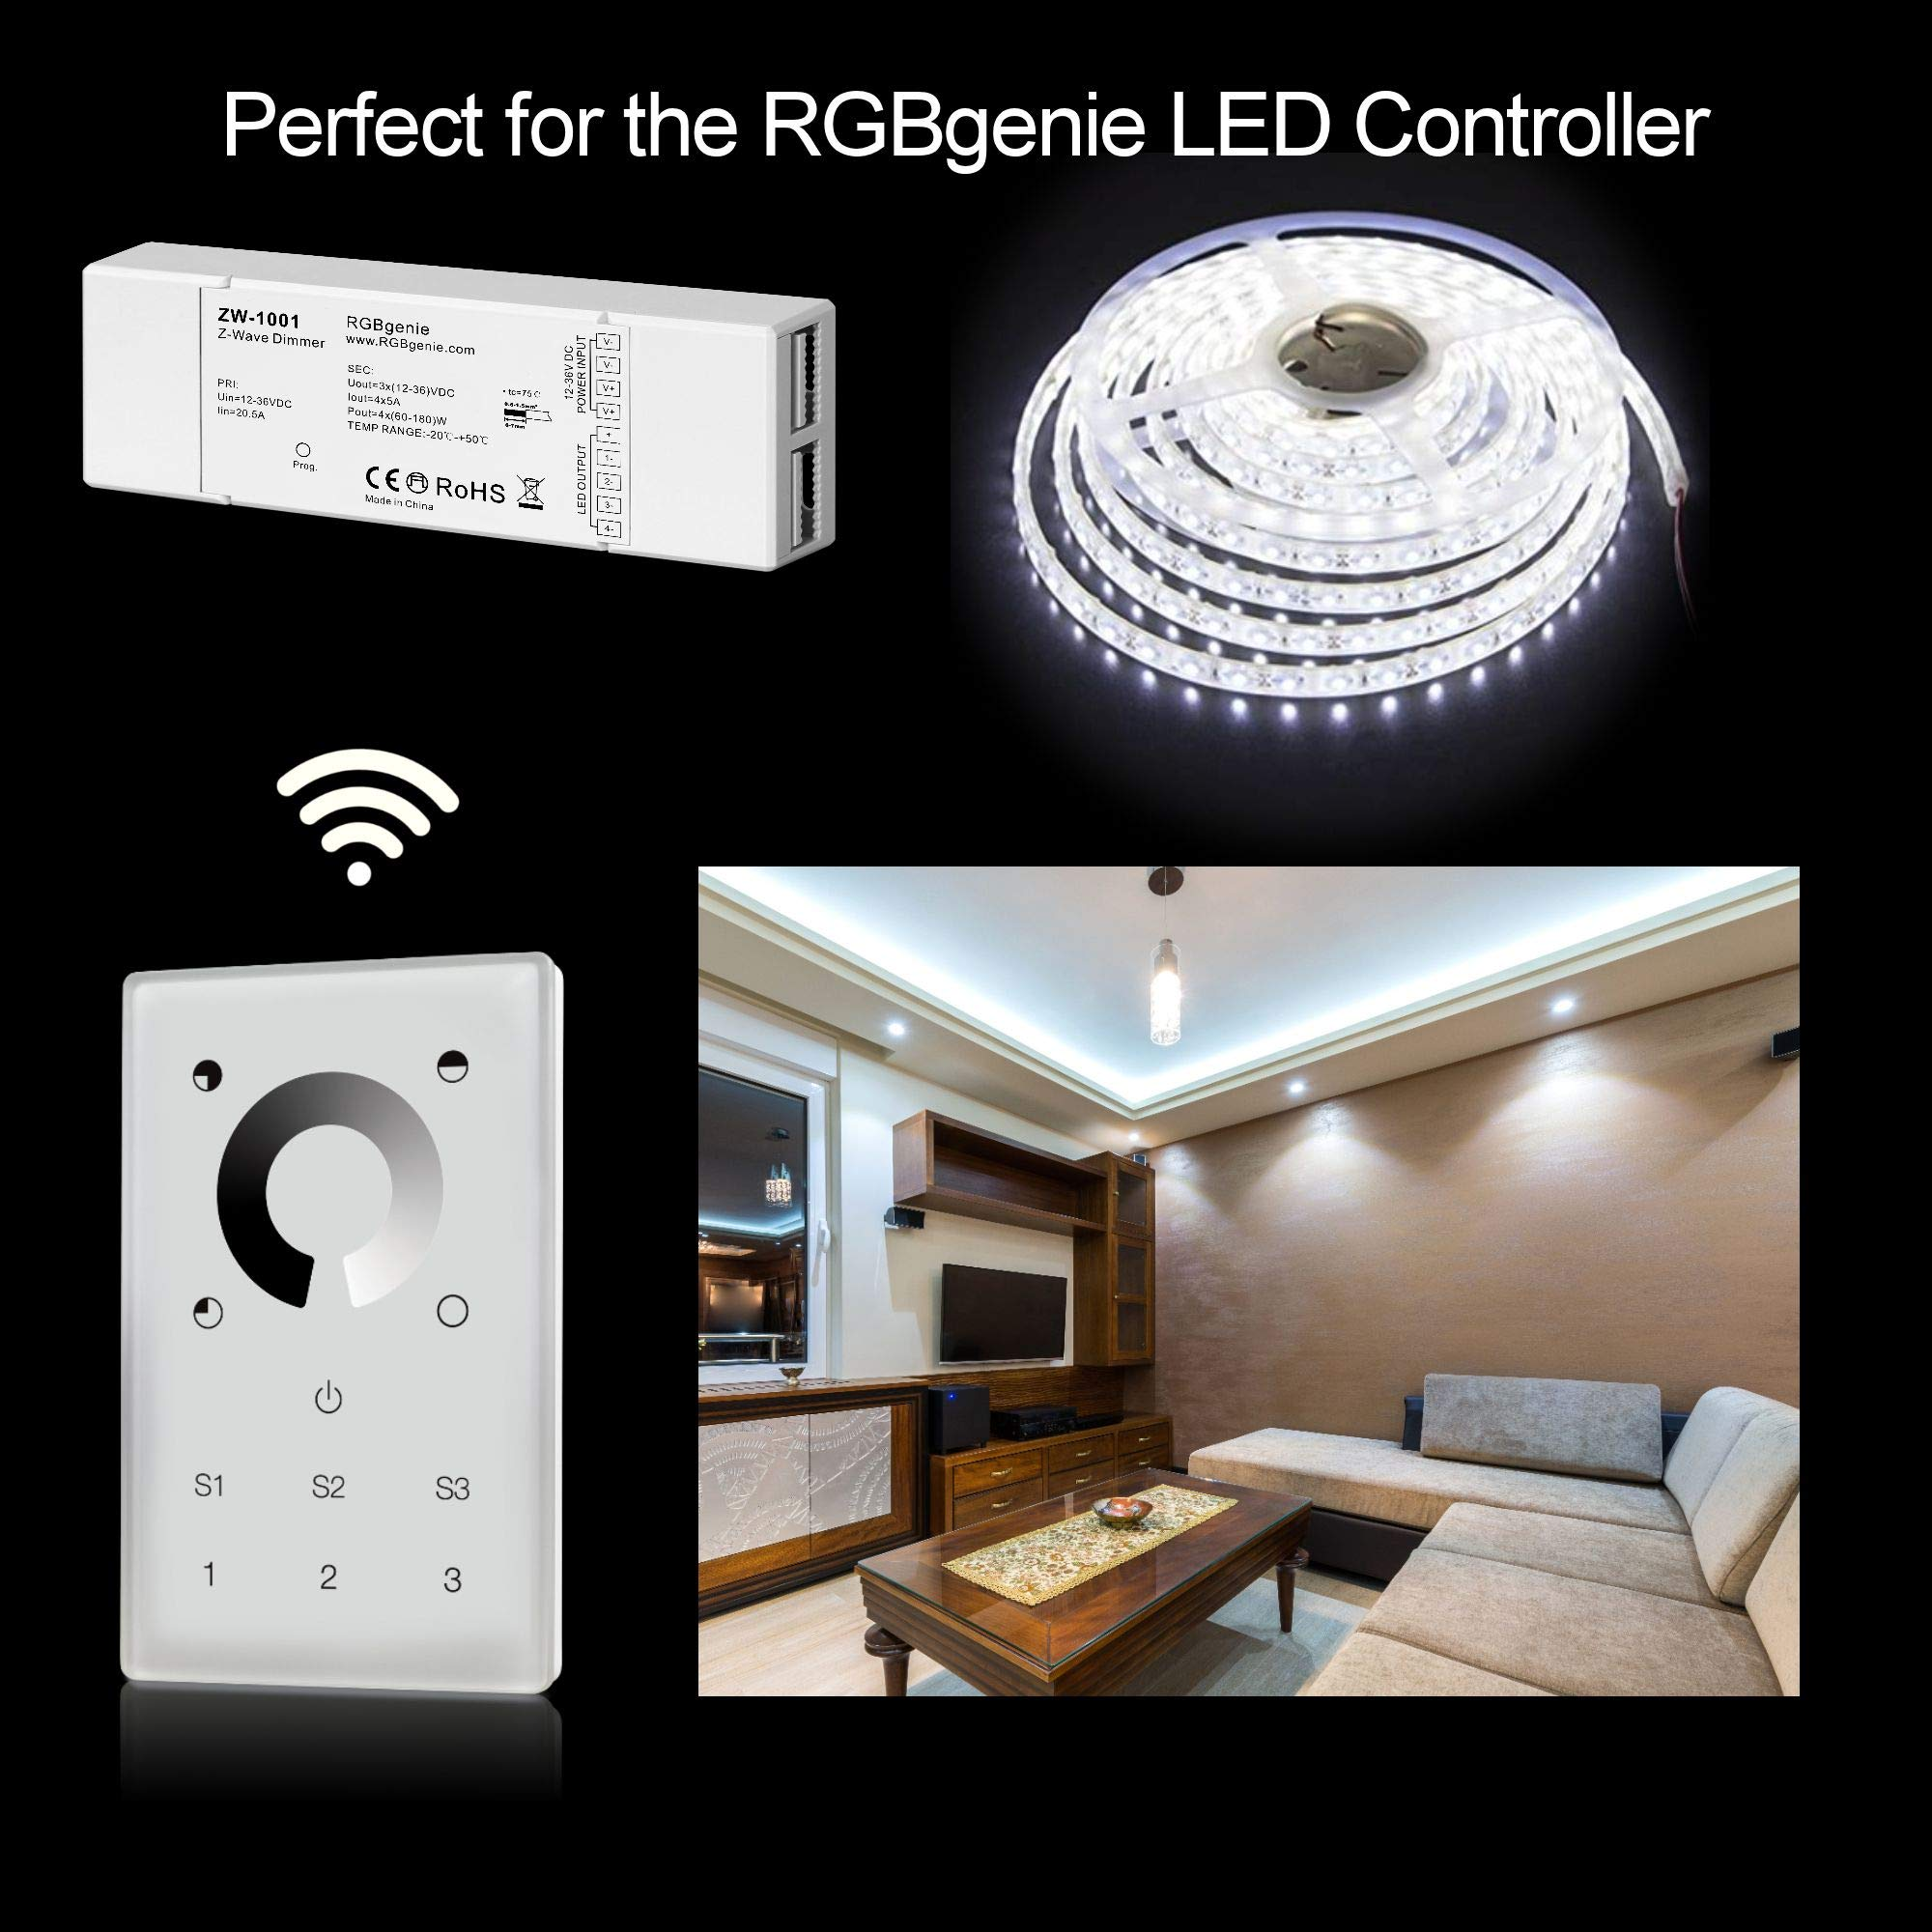 Z-Wave Touch Panel Controller and Dimmer with Built-in Repeater. Can control up to 12 Z-Wave strip lights or bulbs. Single Color, 3 Zone, 3 Scene recall, 110v input. RGBgenie ZW-3001 (white) by RGBgenie (Image #7)